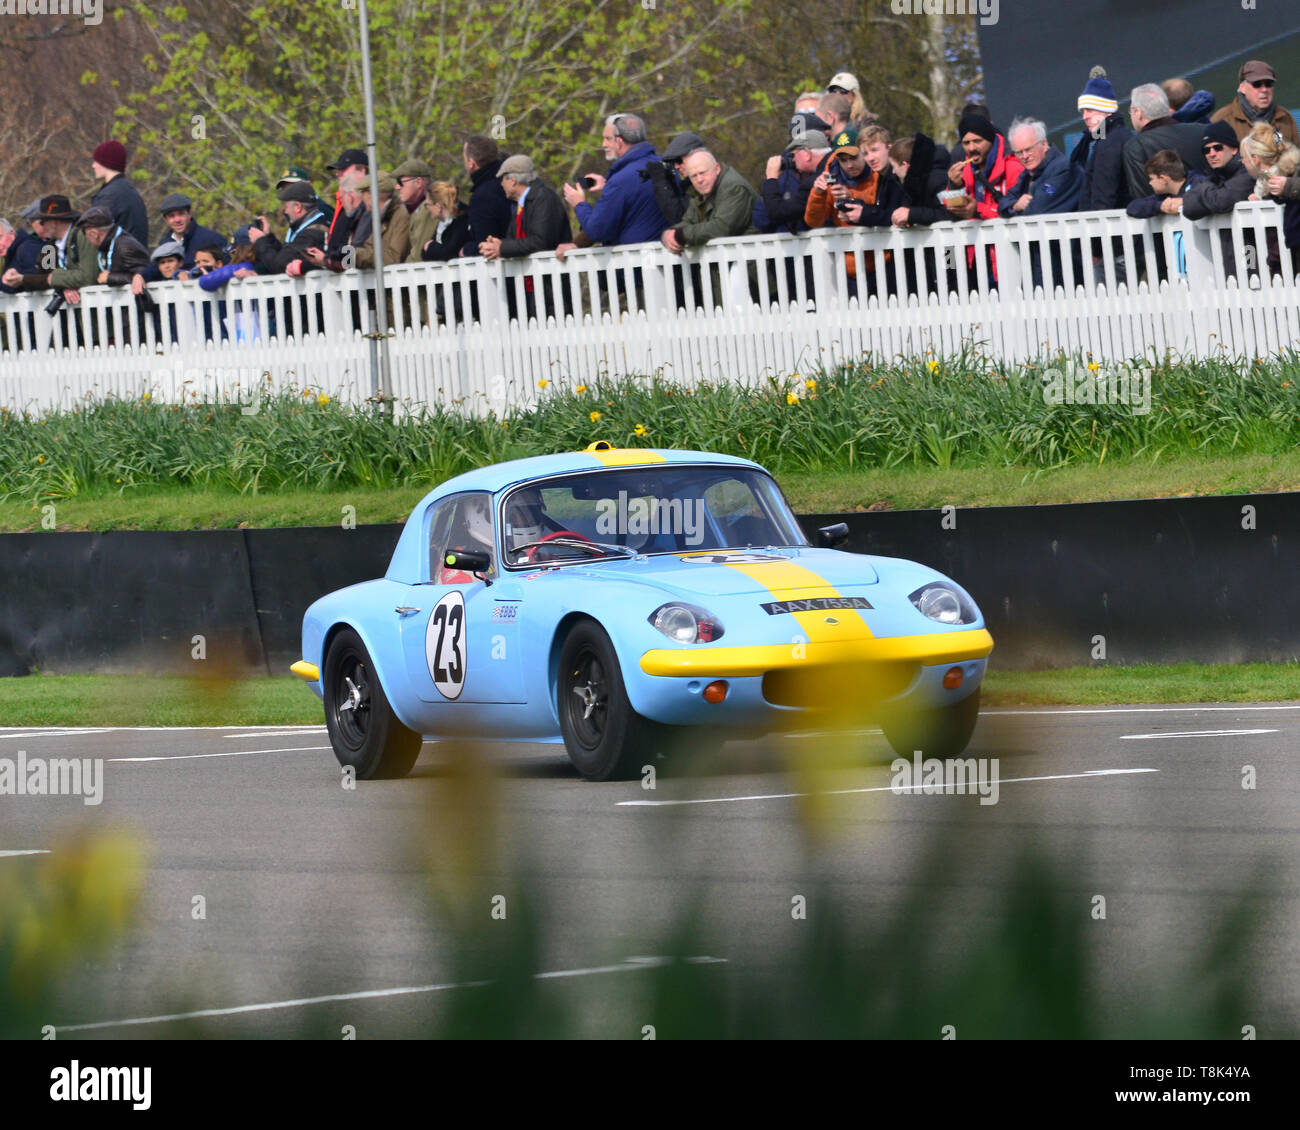 Anthony Hancock, Steve Nichols, Lotus Elan 26R, Graham Hill Trophy, Closed cockpit GT cars, Prototype cars, Spirit of the RAC TT Races 1960-1964, 77th - Stock Image